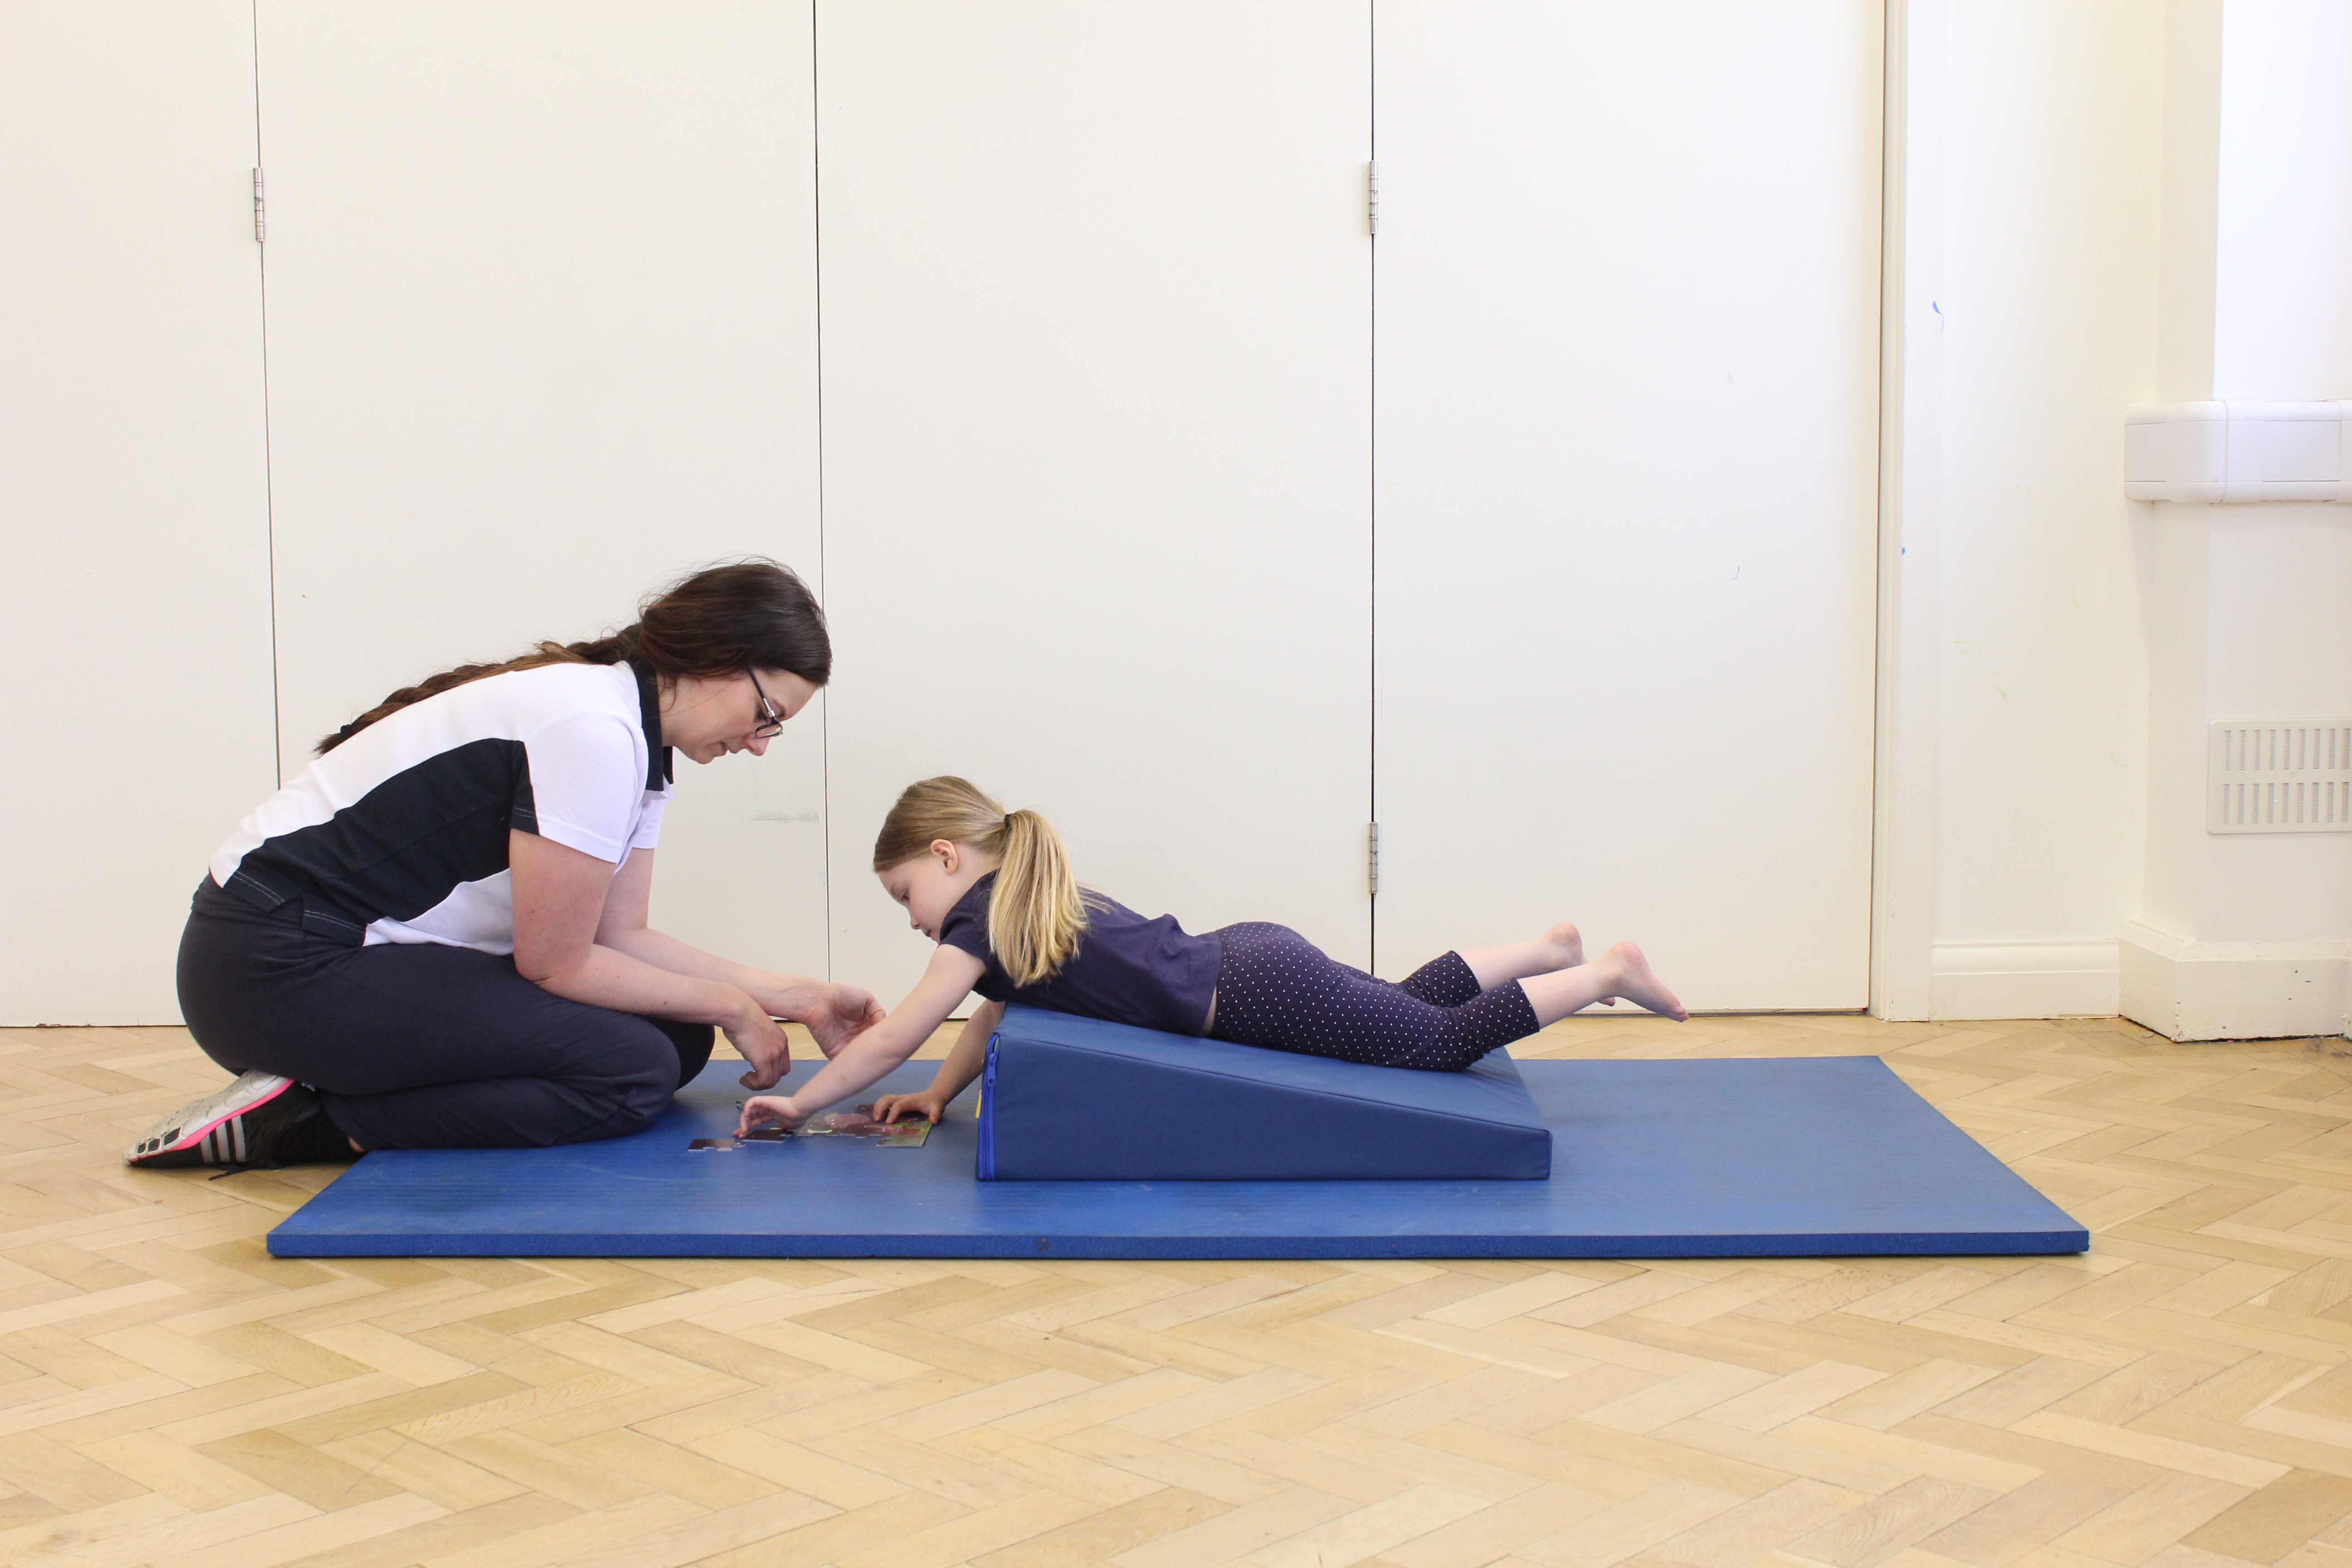 neurological physiotherapist developing communication skills through play activites